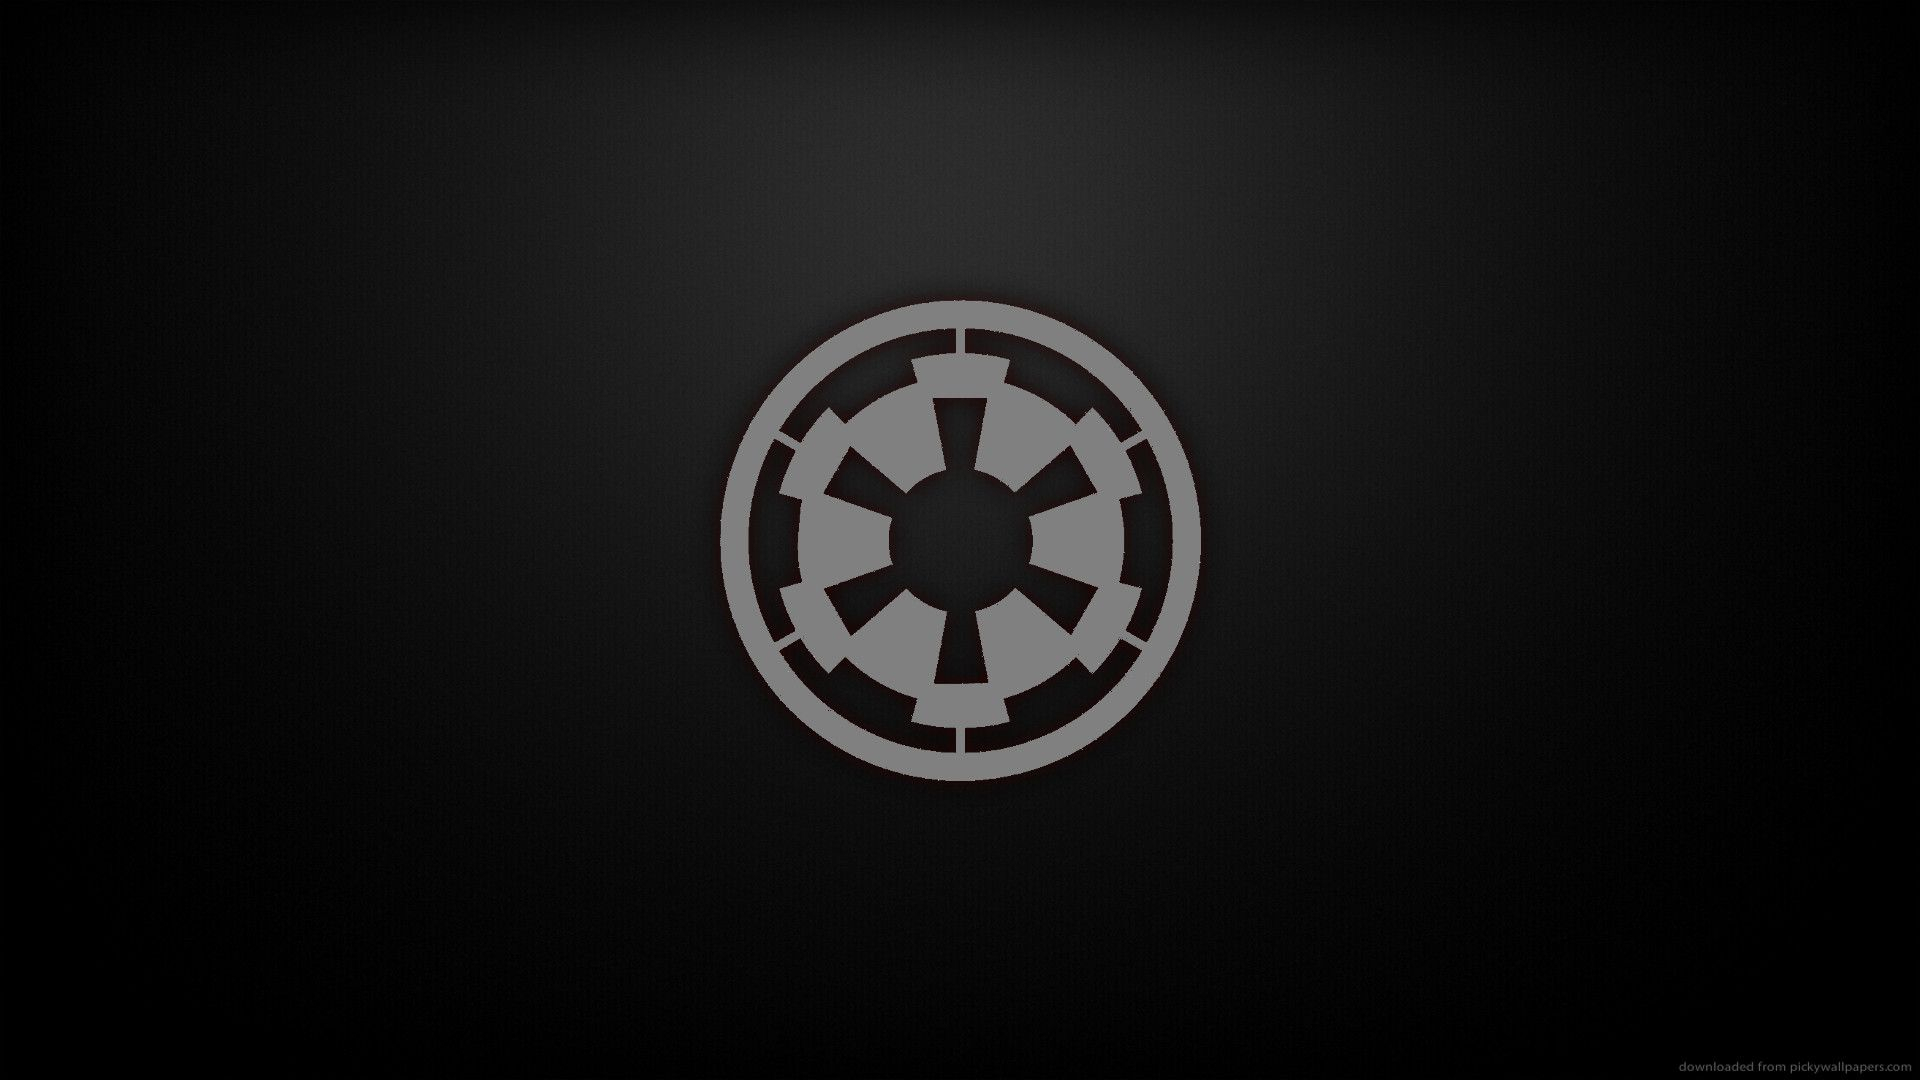 imperial wallpapers - wallpaper cave